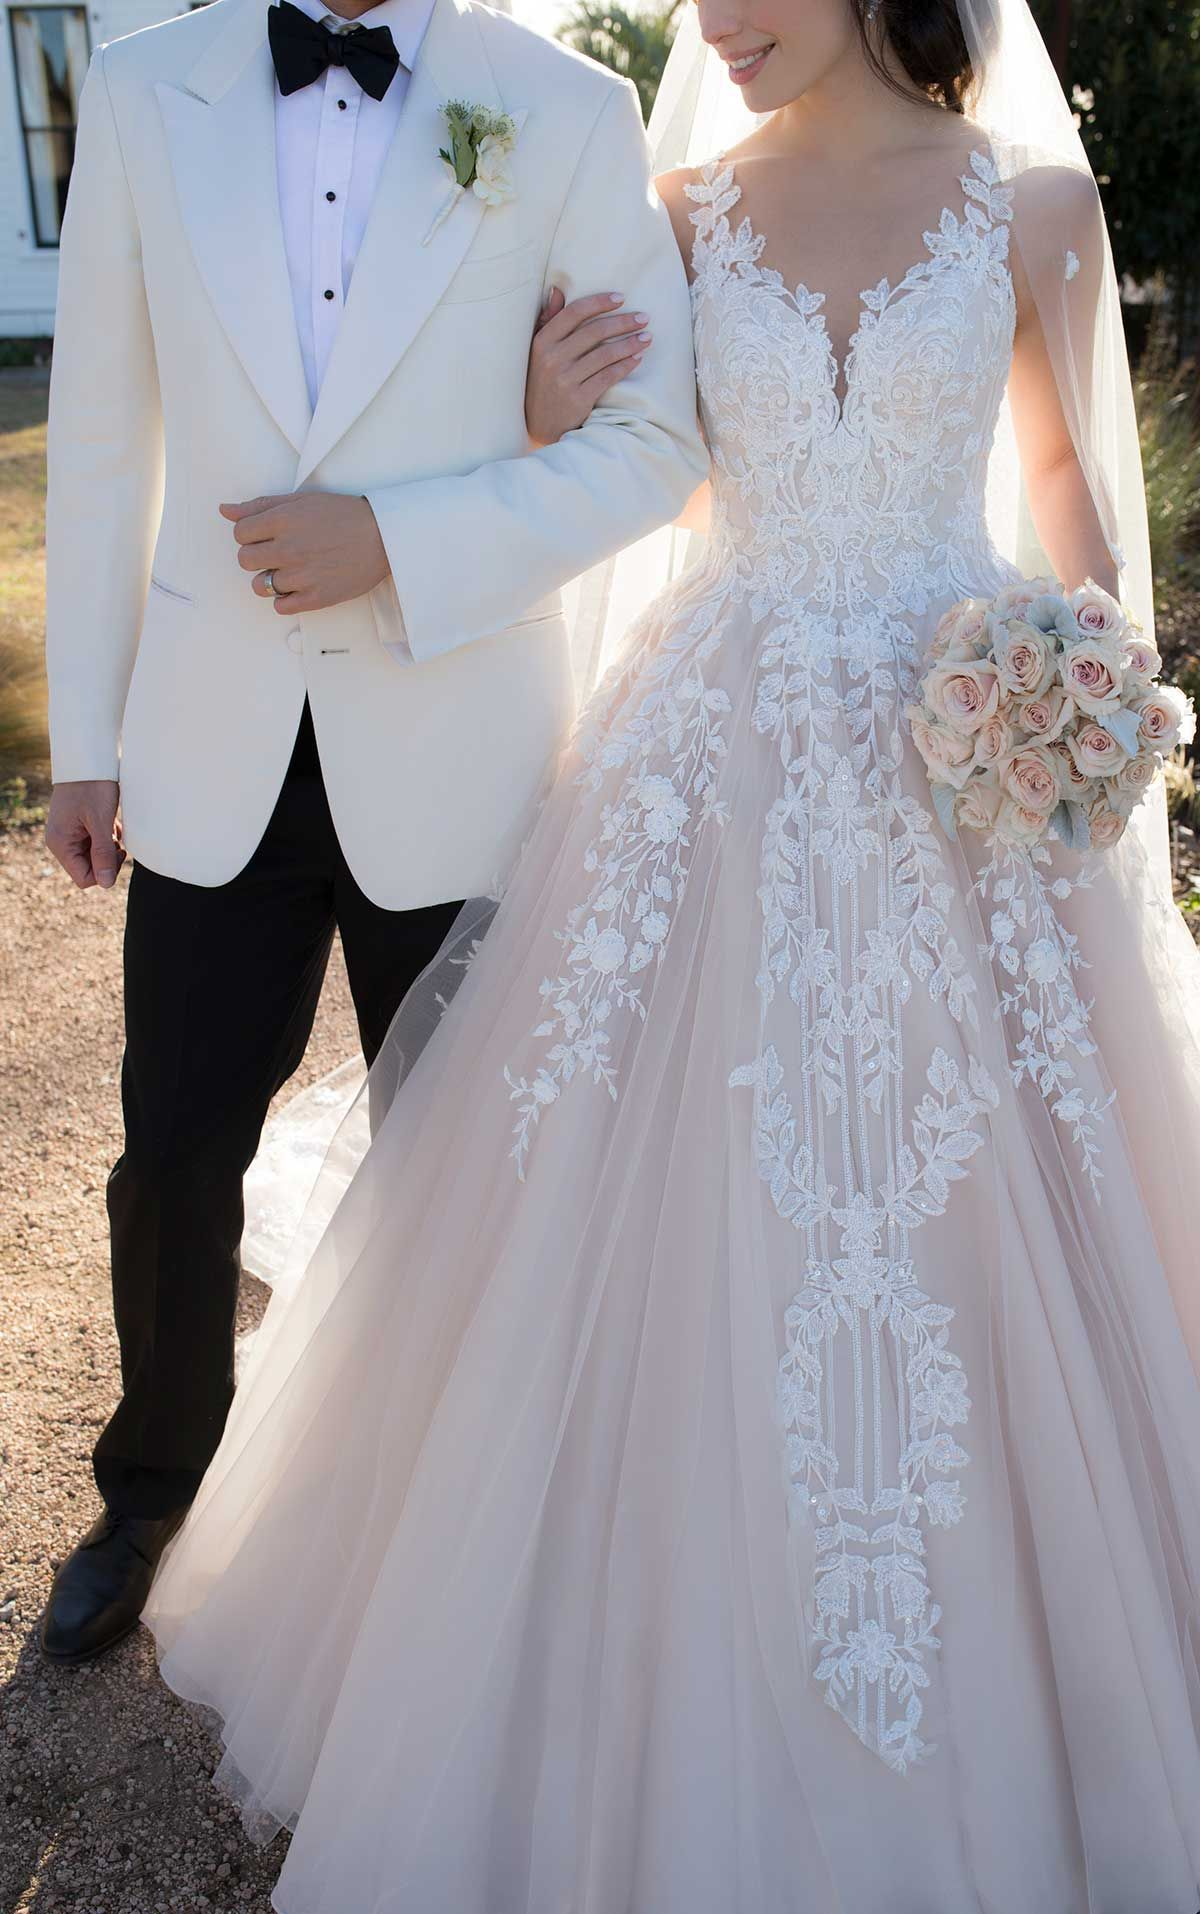 Ballgown Wedding Dress with Botanical Lace - Marti